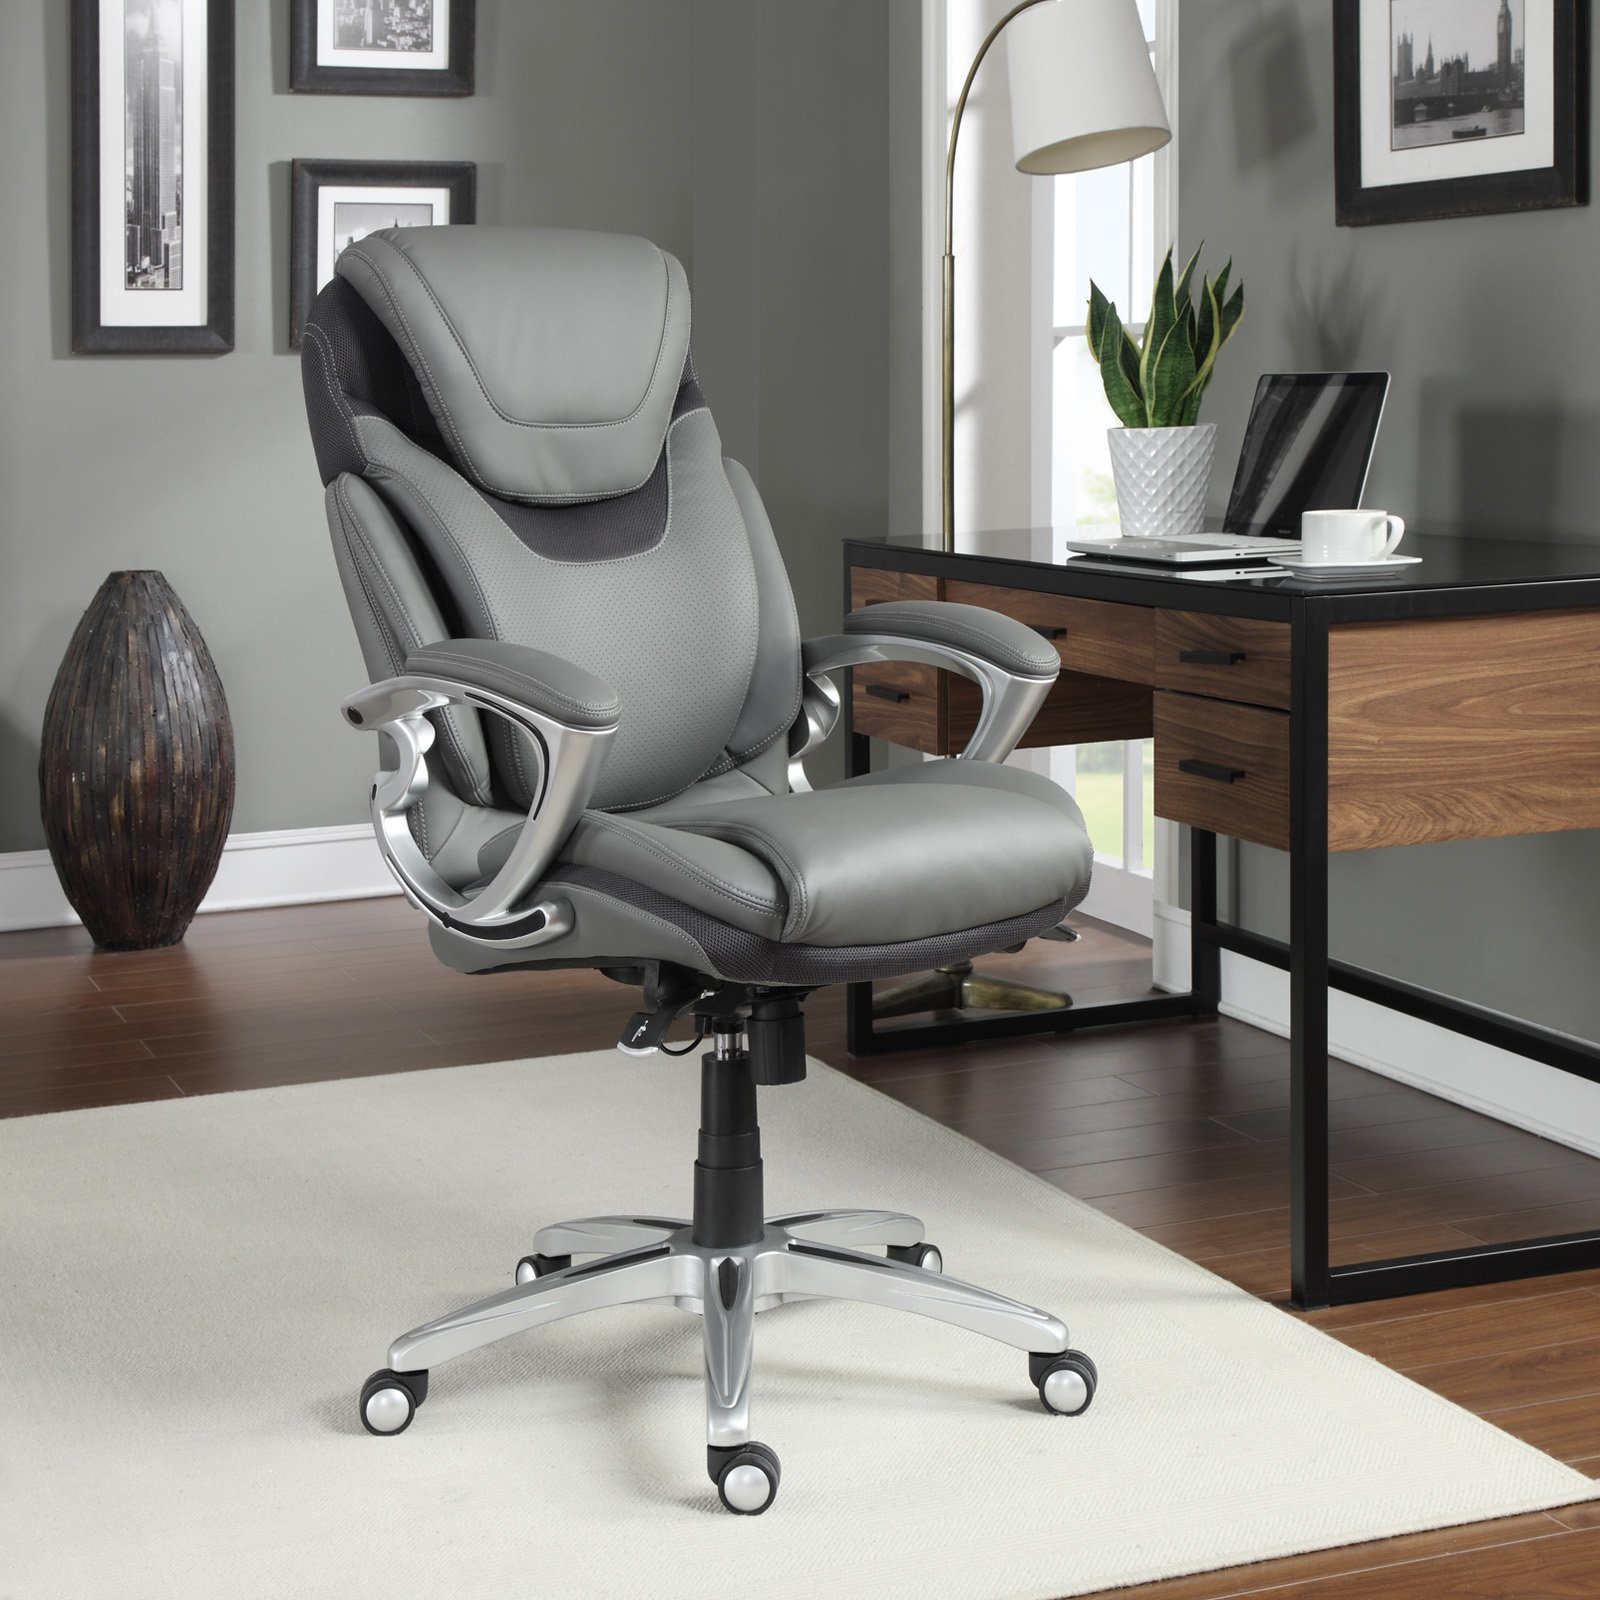 Serta AIR Health & Wellness Leather Executive Office Chair, Light Grey